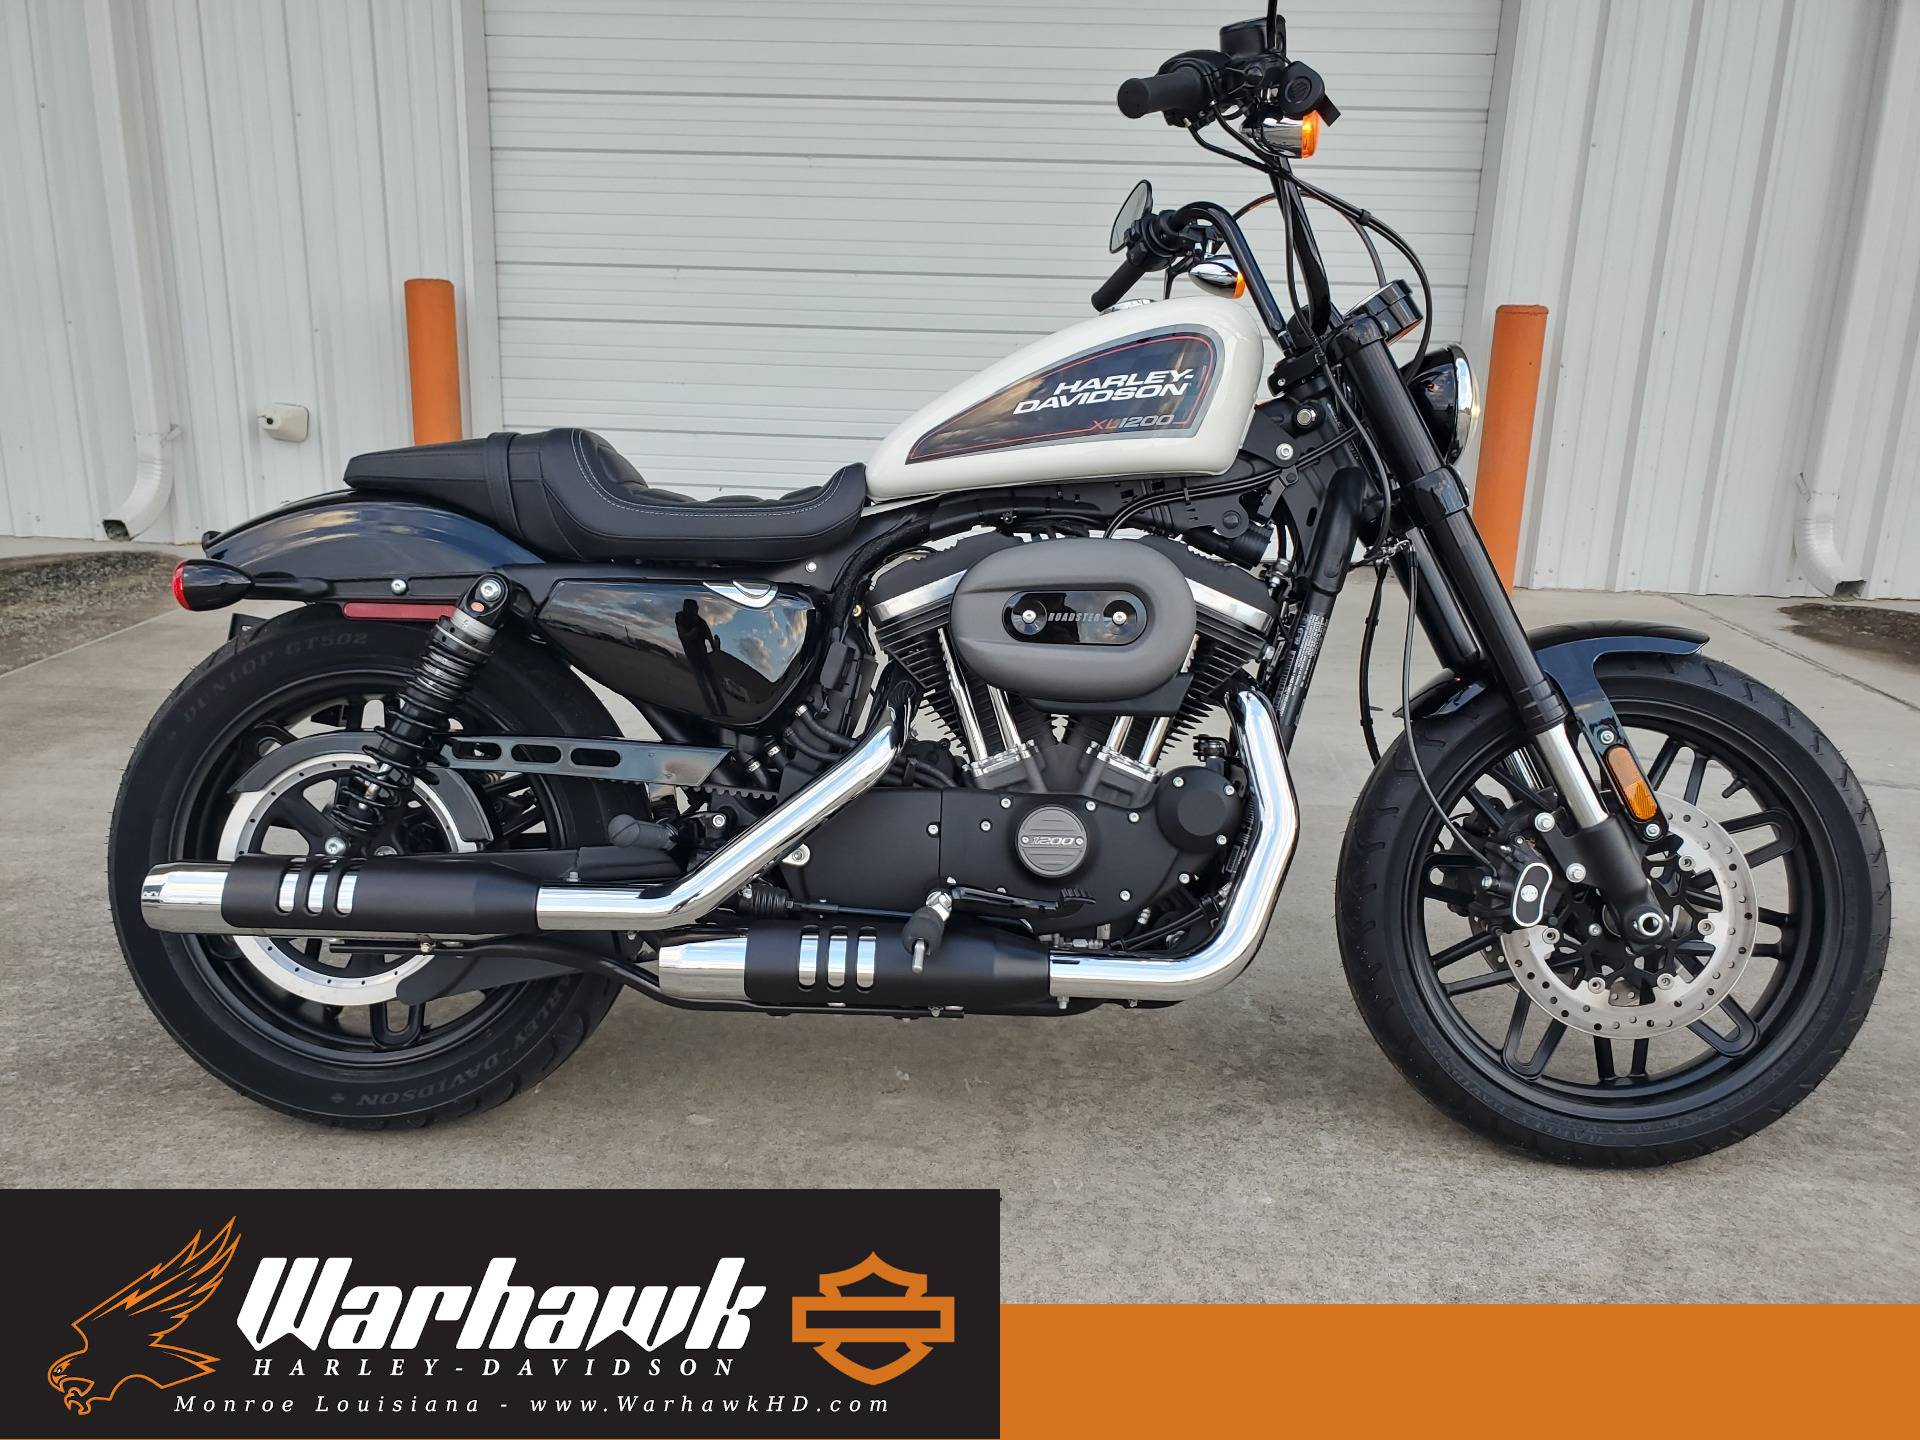 New 2019 Harley Sportster Roadster for sale near me - Photo 1